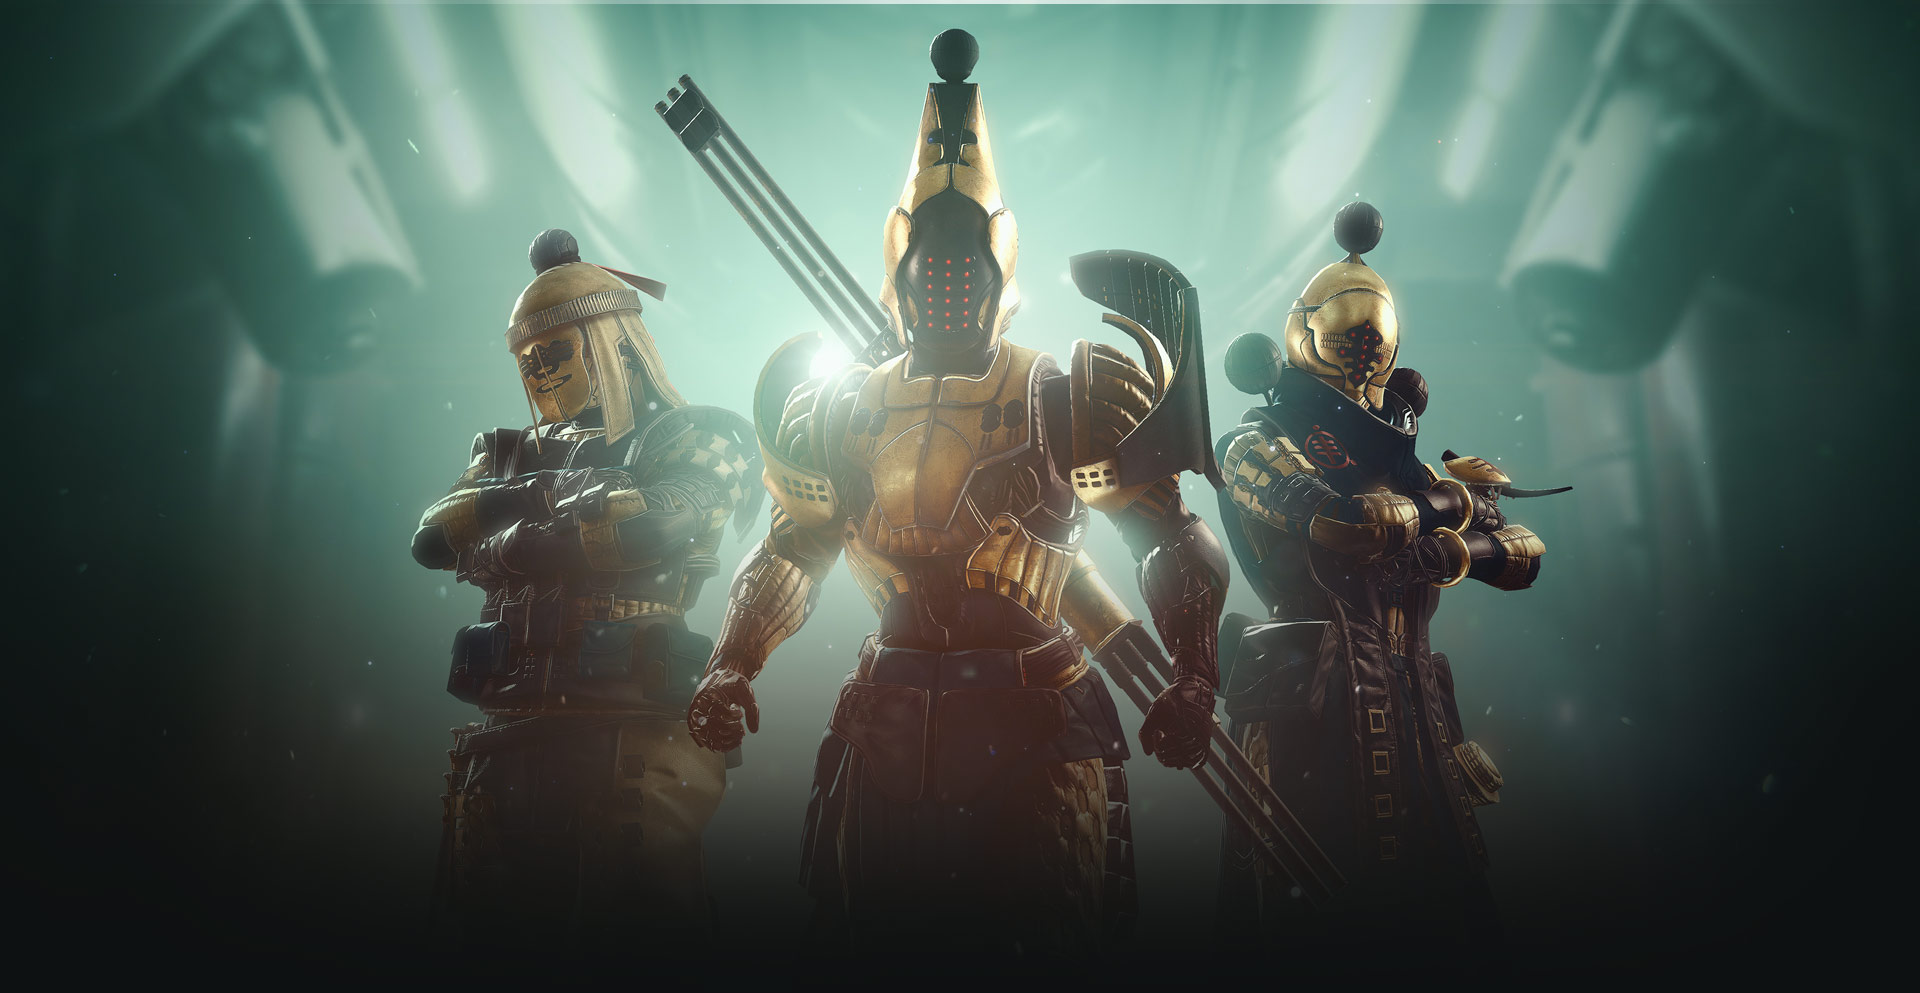 https://www.bungie.net/7/ca/destiny/bgs/season13/rewards_bg_desktop.jpg